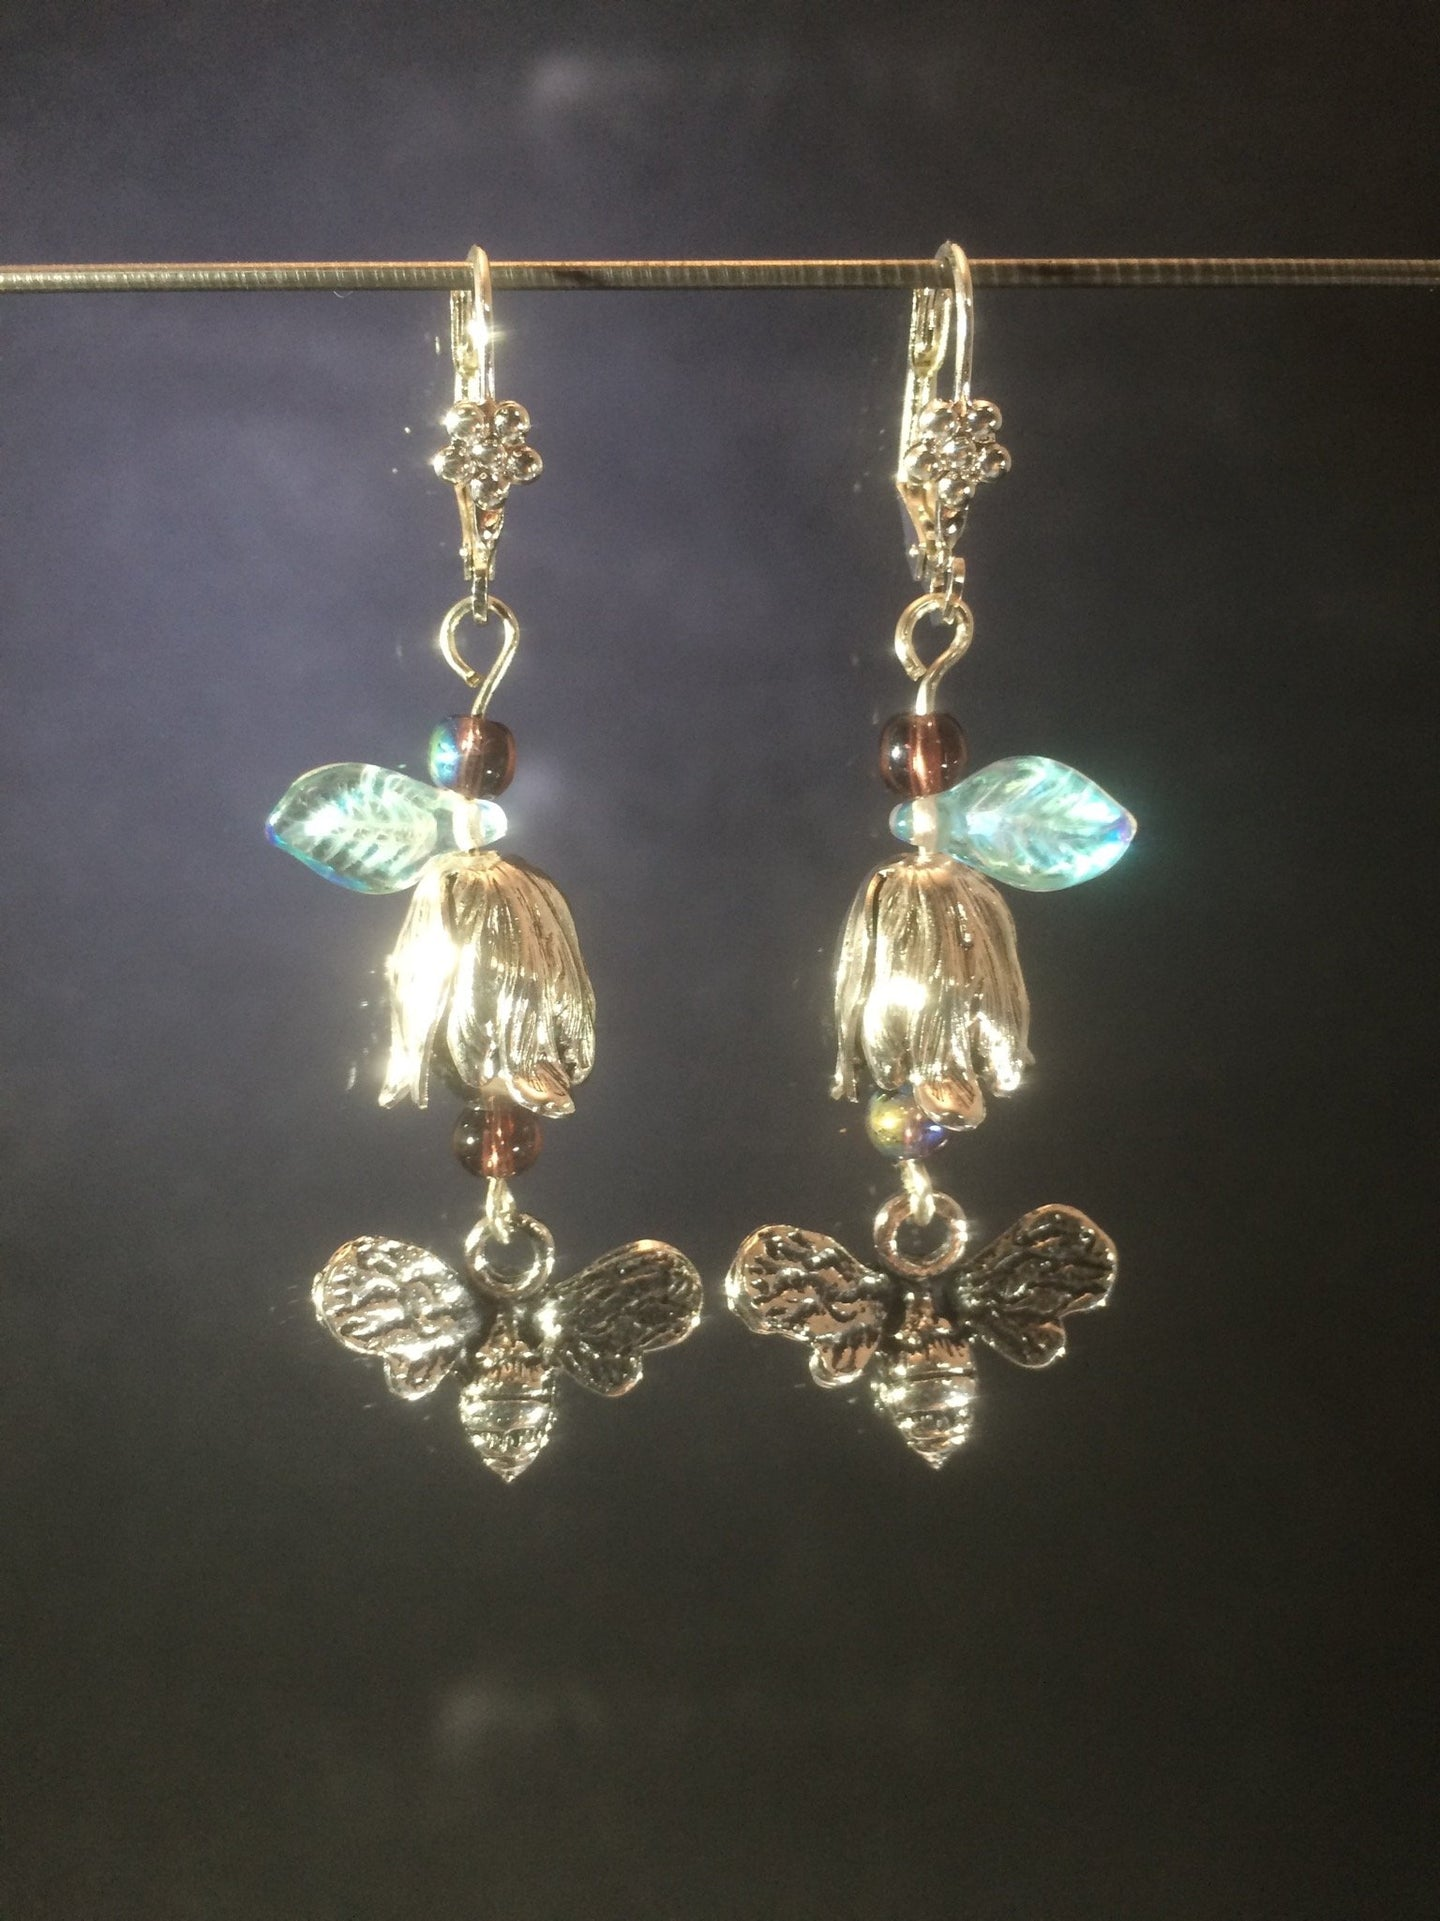 These leverback earrings feature silver plated zinc petwer charms of bees and flowers along with Czech pressed glass leaves and glass pearls.